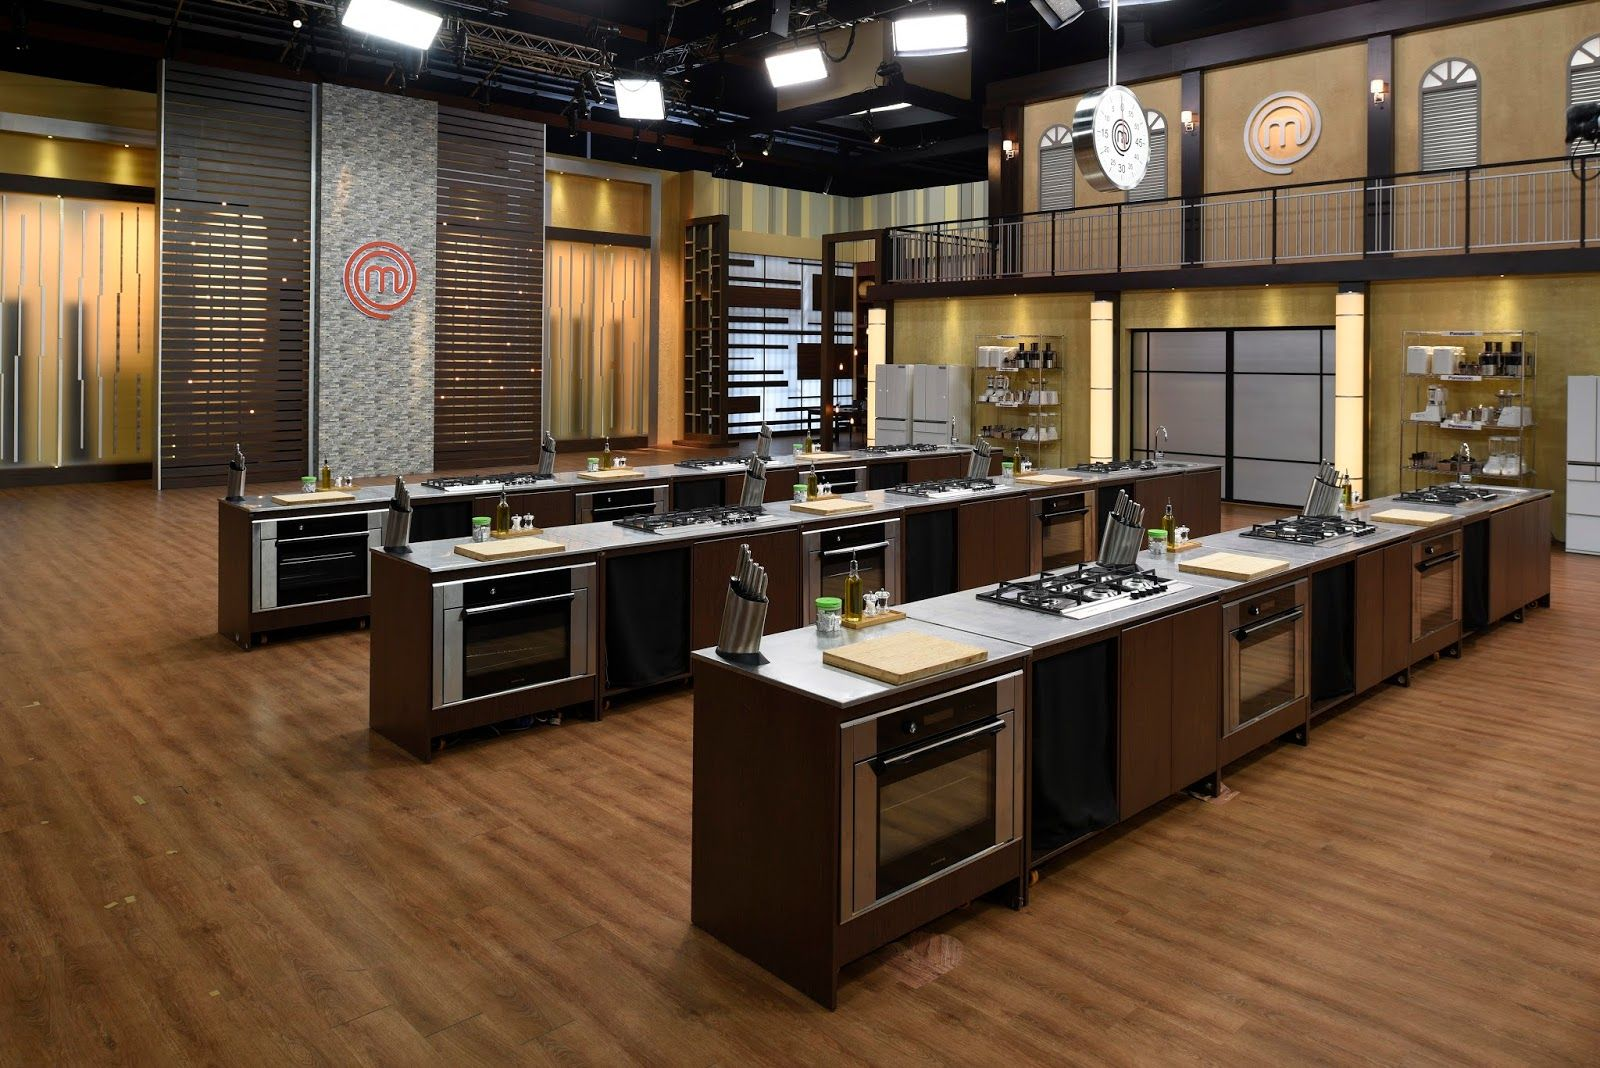 Uncategorized Masterchef Kitchen Design state of the art cook stations equipment and every culinary tool imaginable kitchen is a chefs dream canadian masterchef